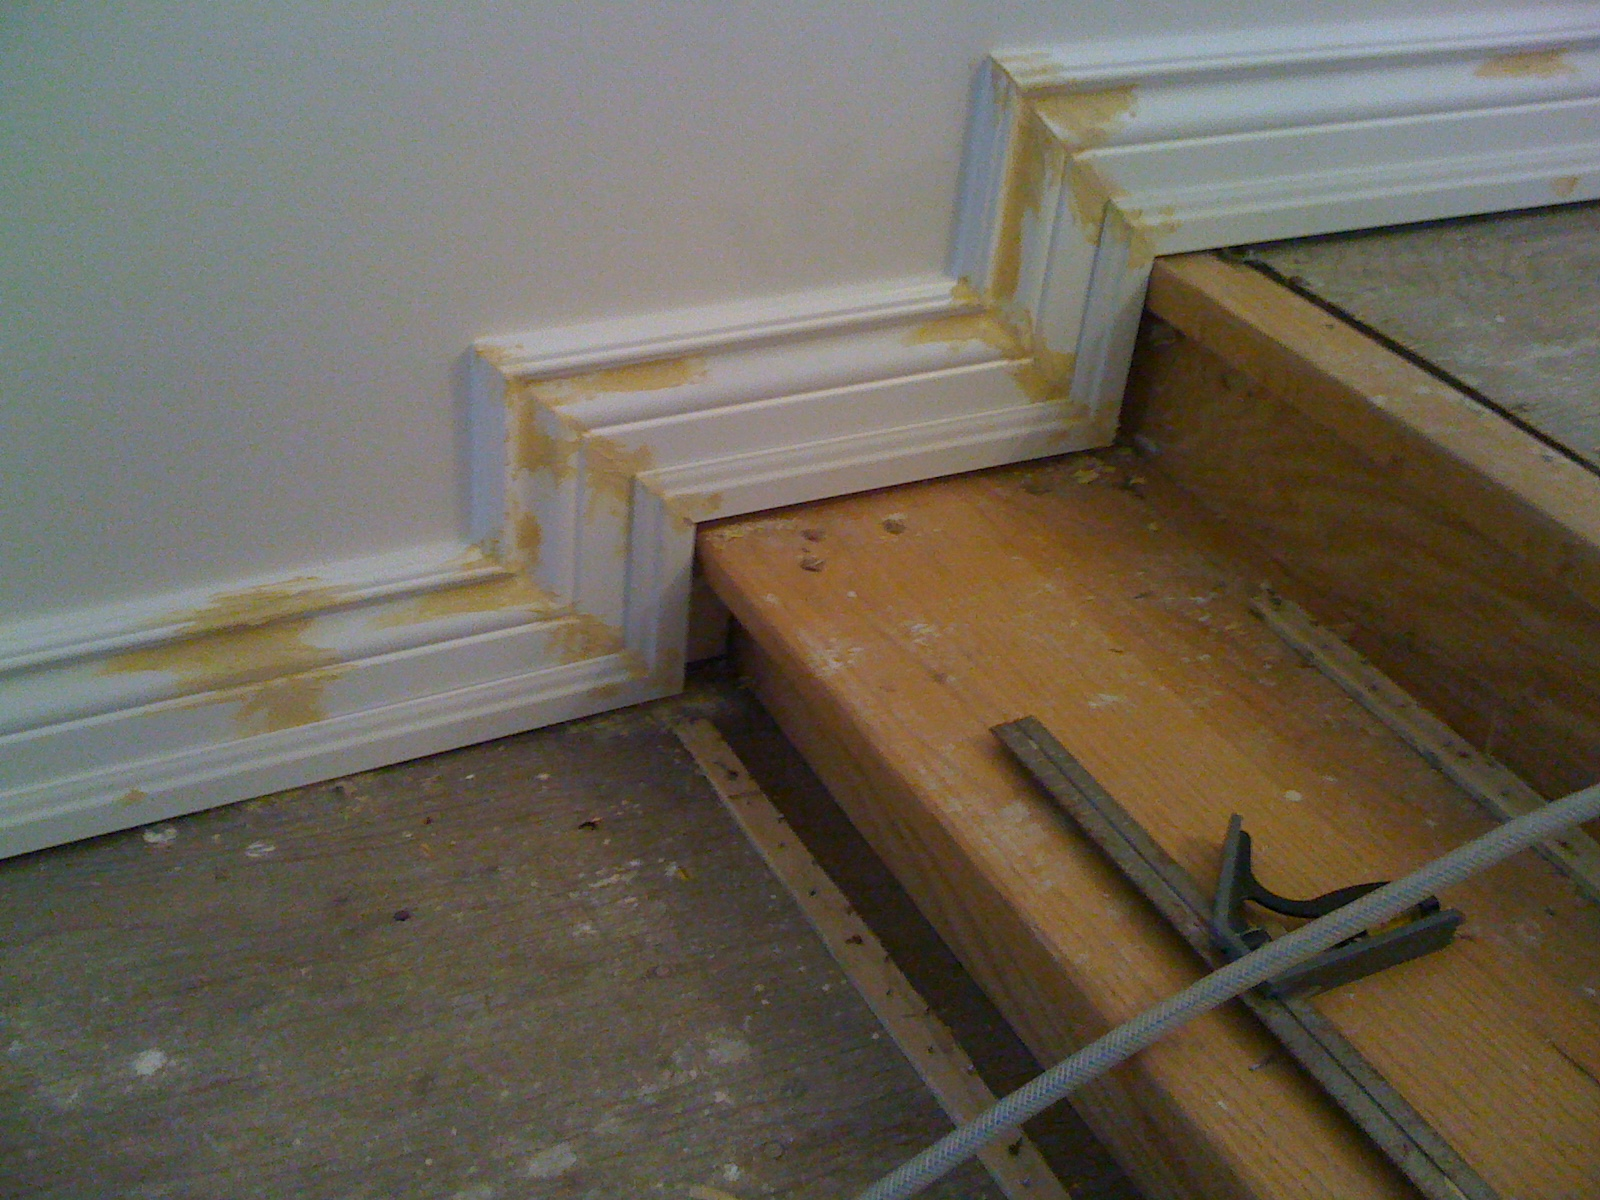 Baseboard ready for paint